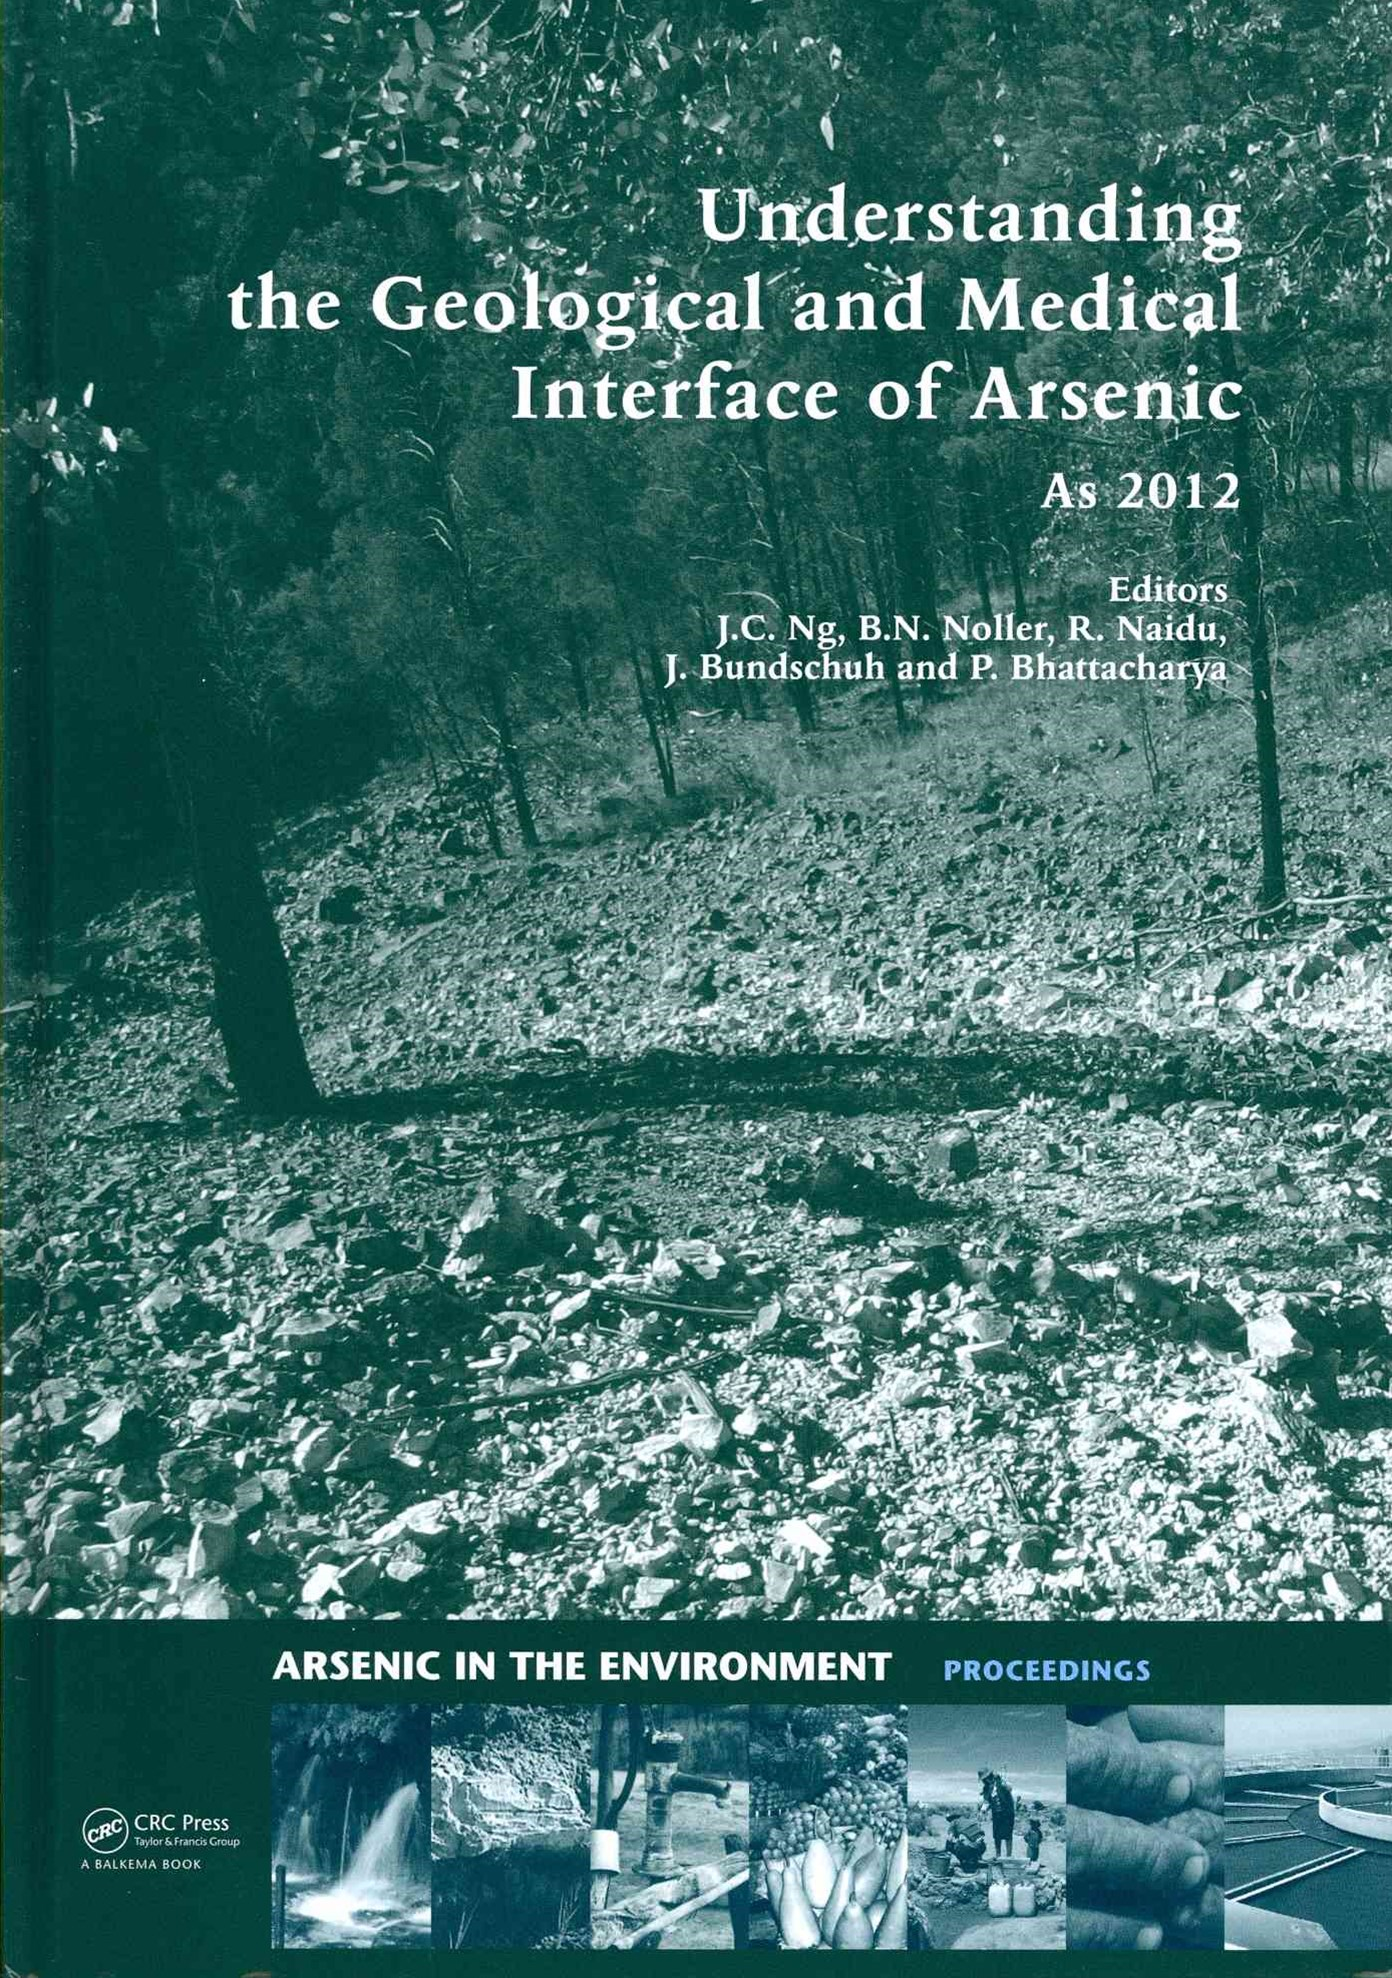 Understanding the Geological and Medical Interface of Arsenic - AS 2012